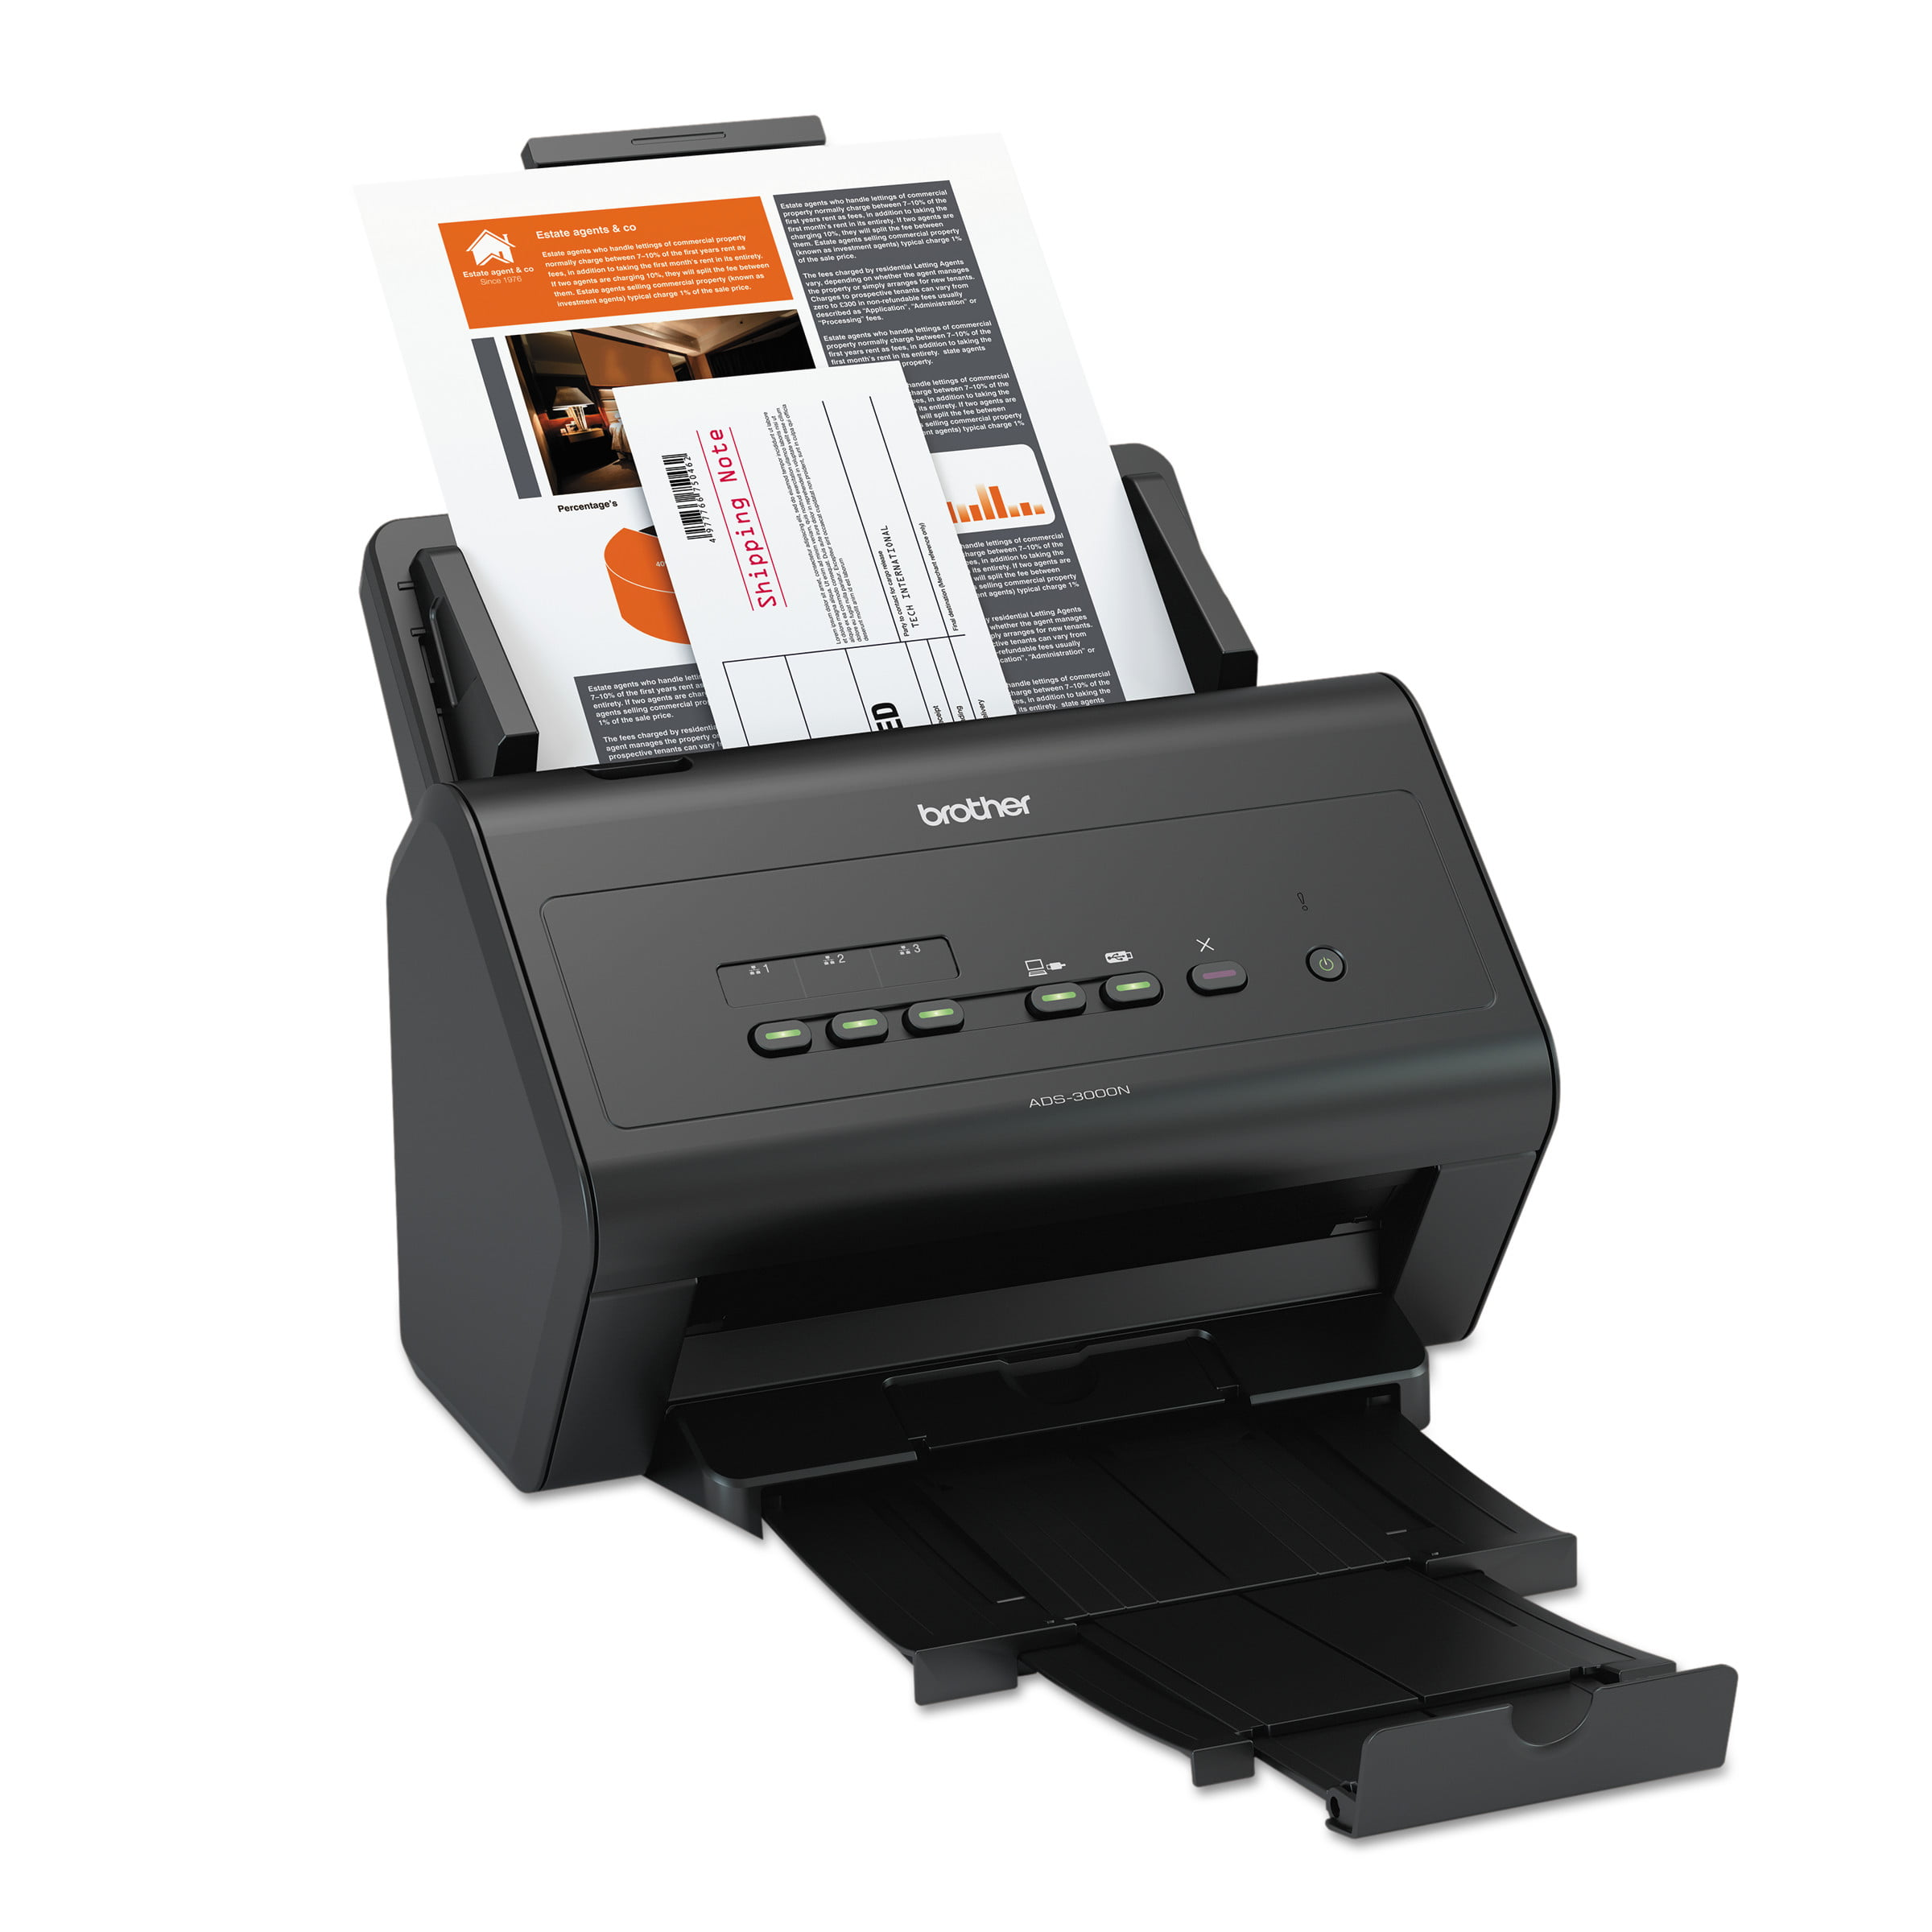 Brother IMageCenter ADS-3000N High-Speed Network Document Scanner by BROTHER INTL. CORP.